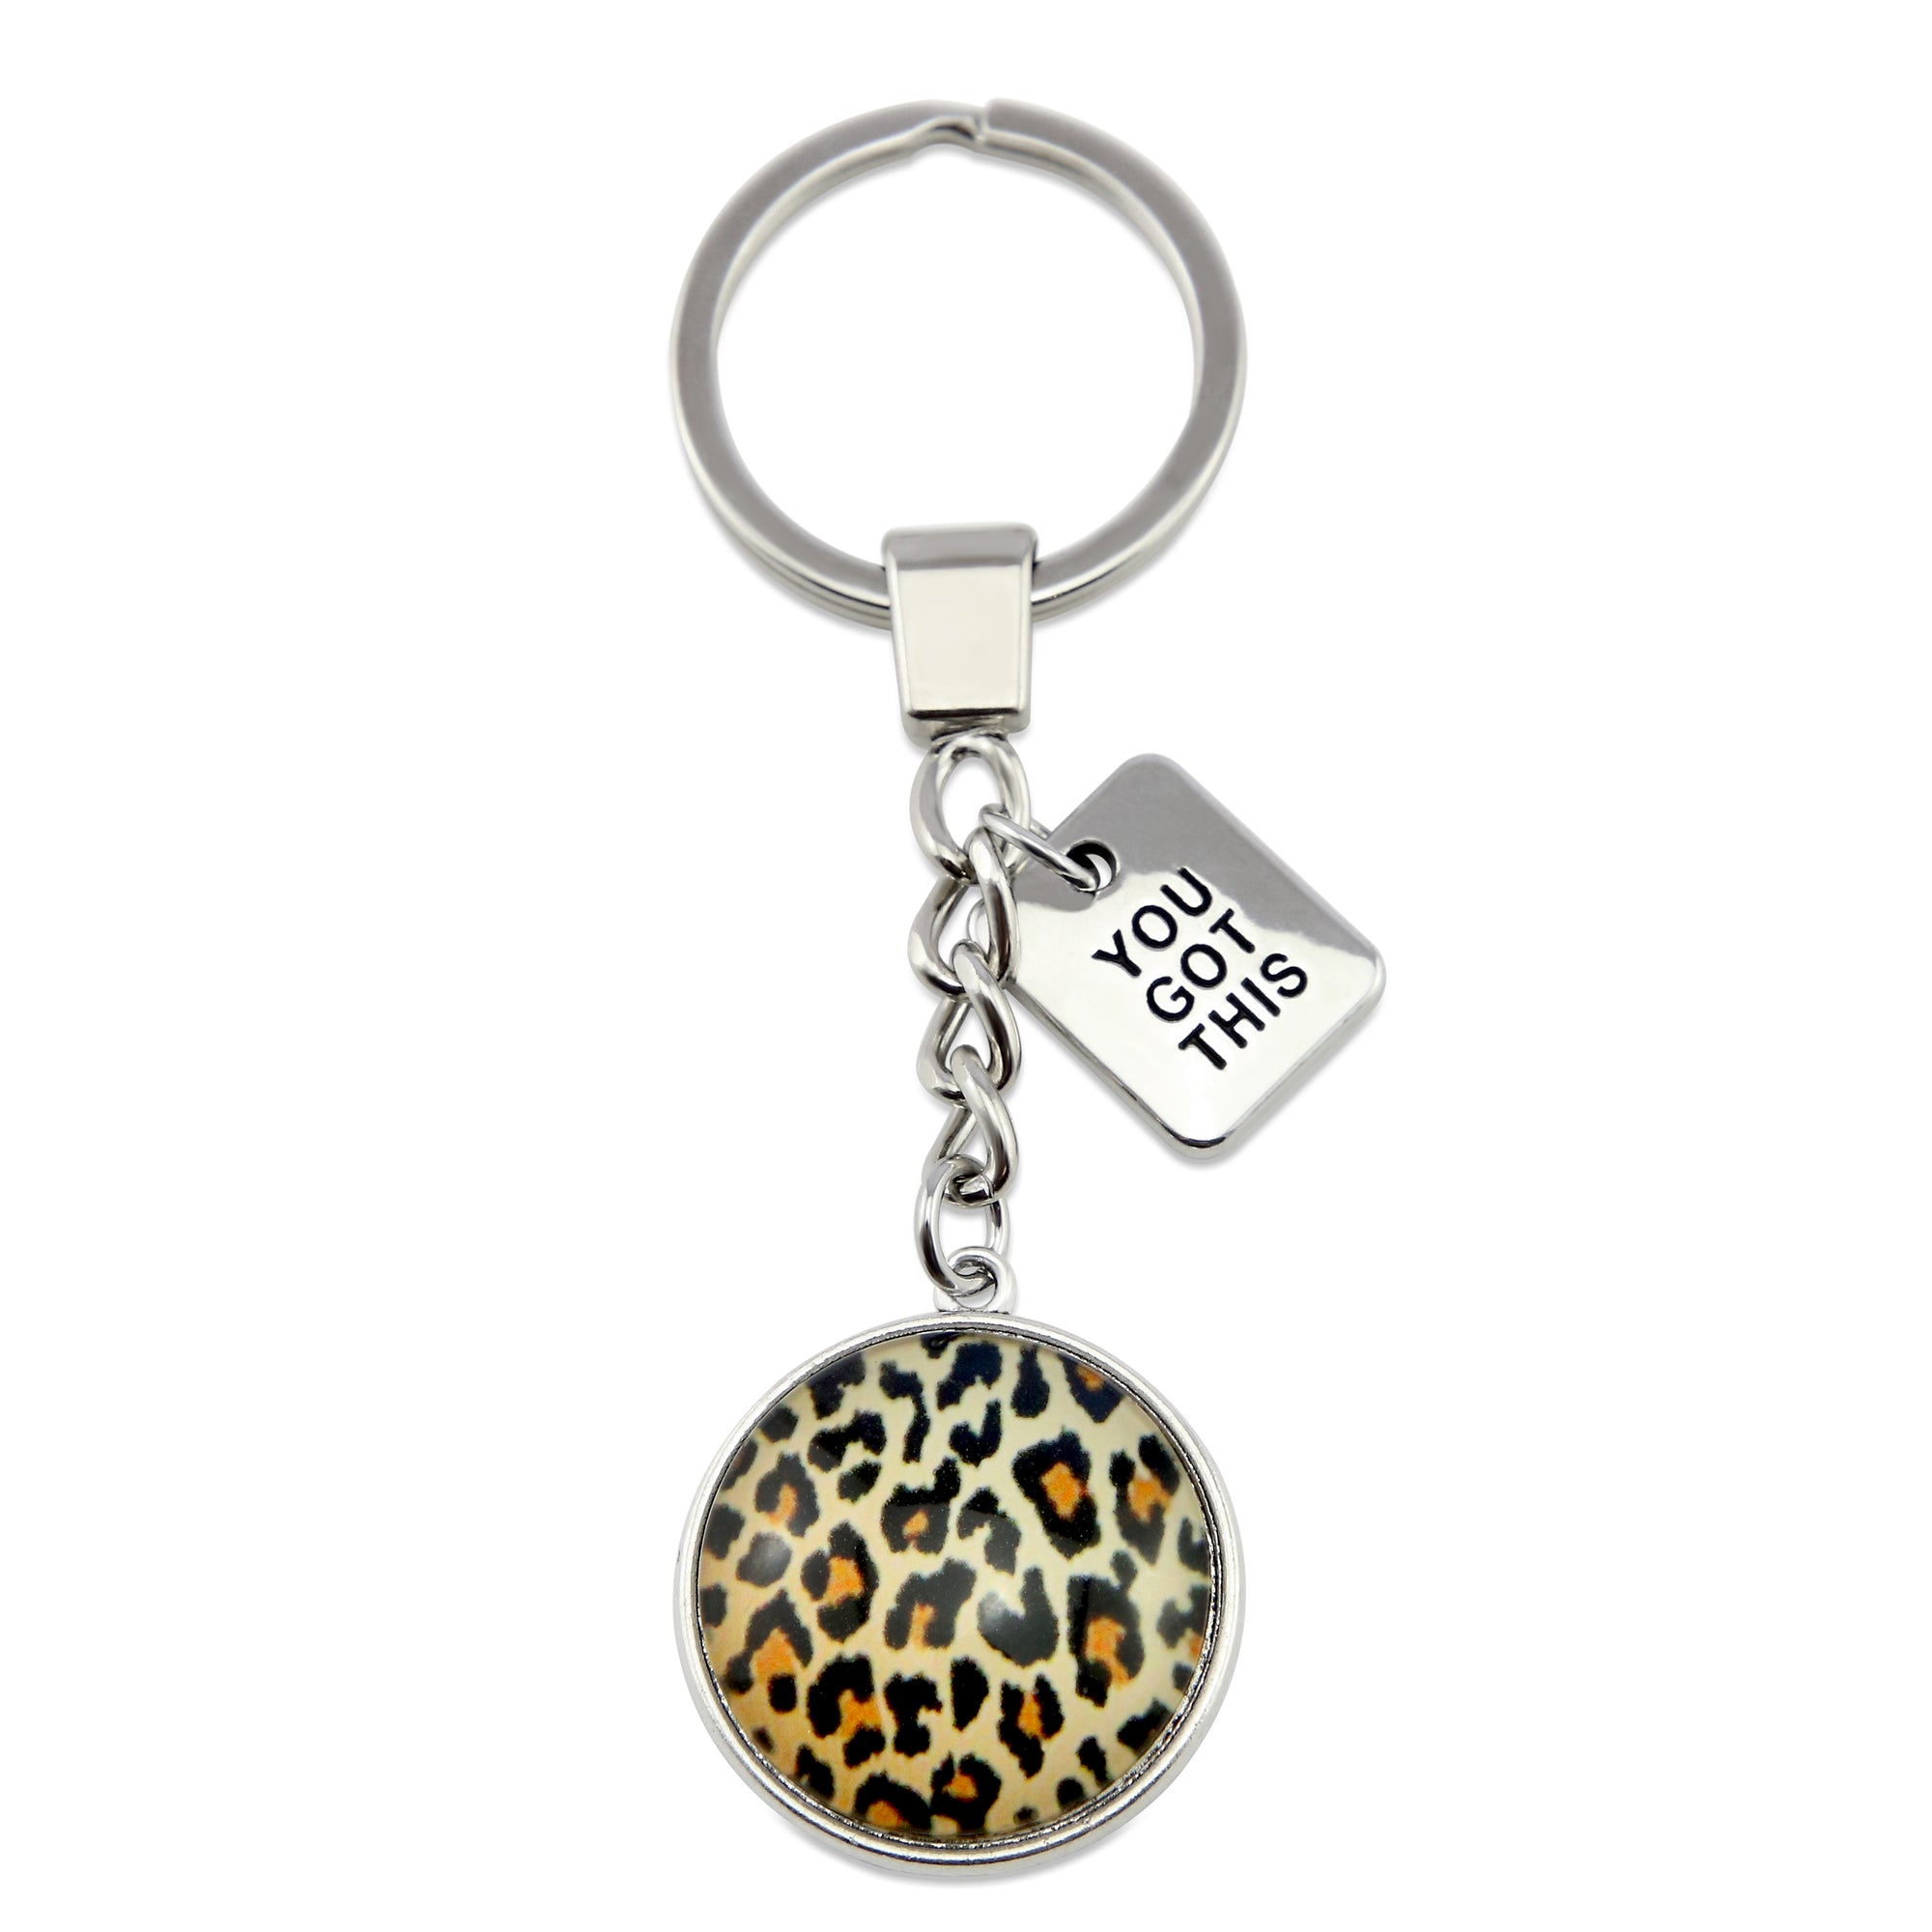 The STRONG Women Collection - Vintage Silver Keyring with 'YOU GOT THIS' Charm - Wild Thing Leopard (10625)